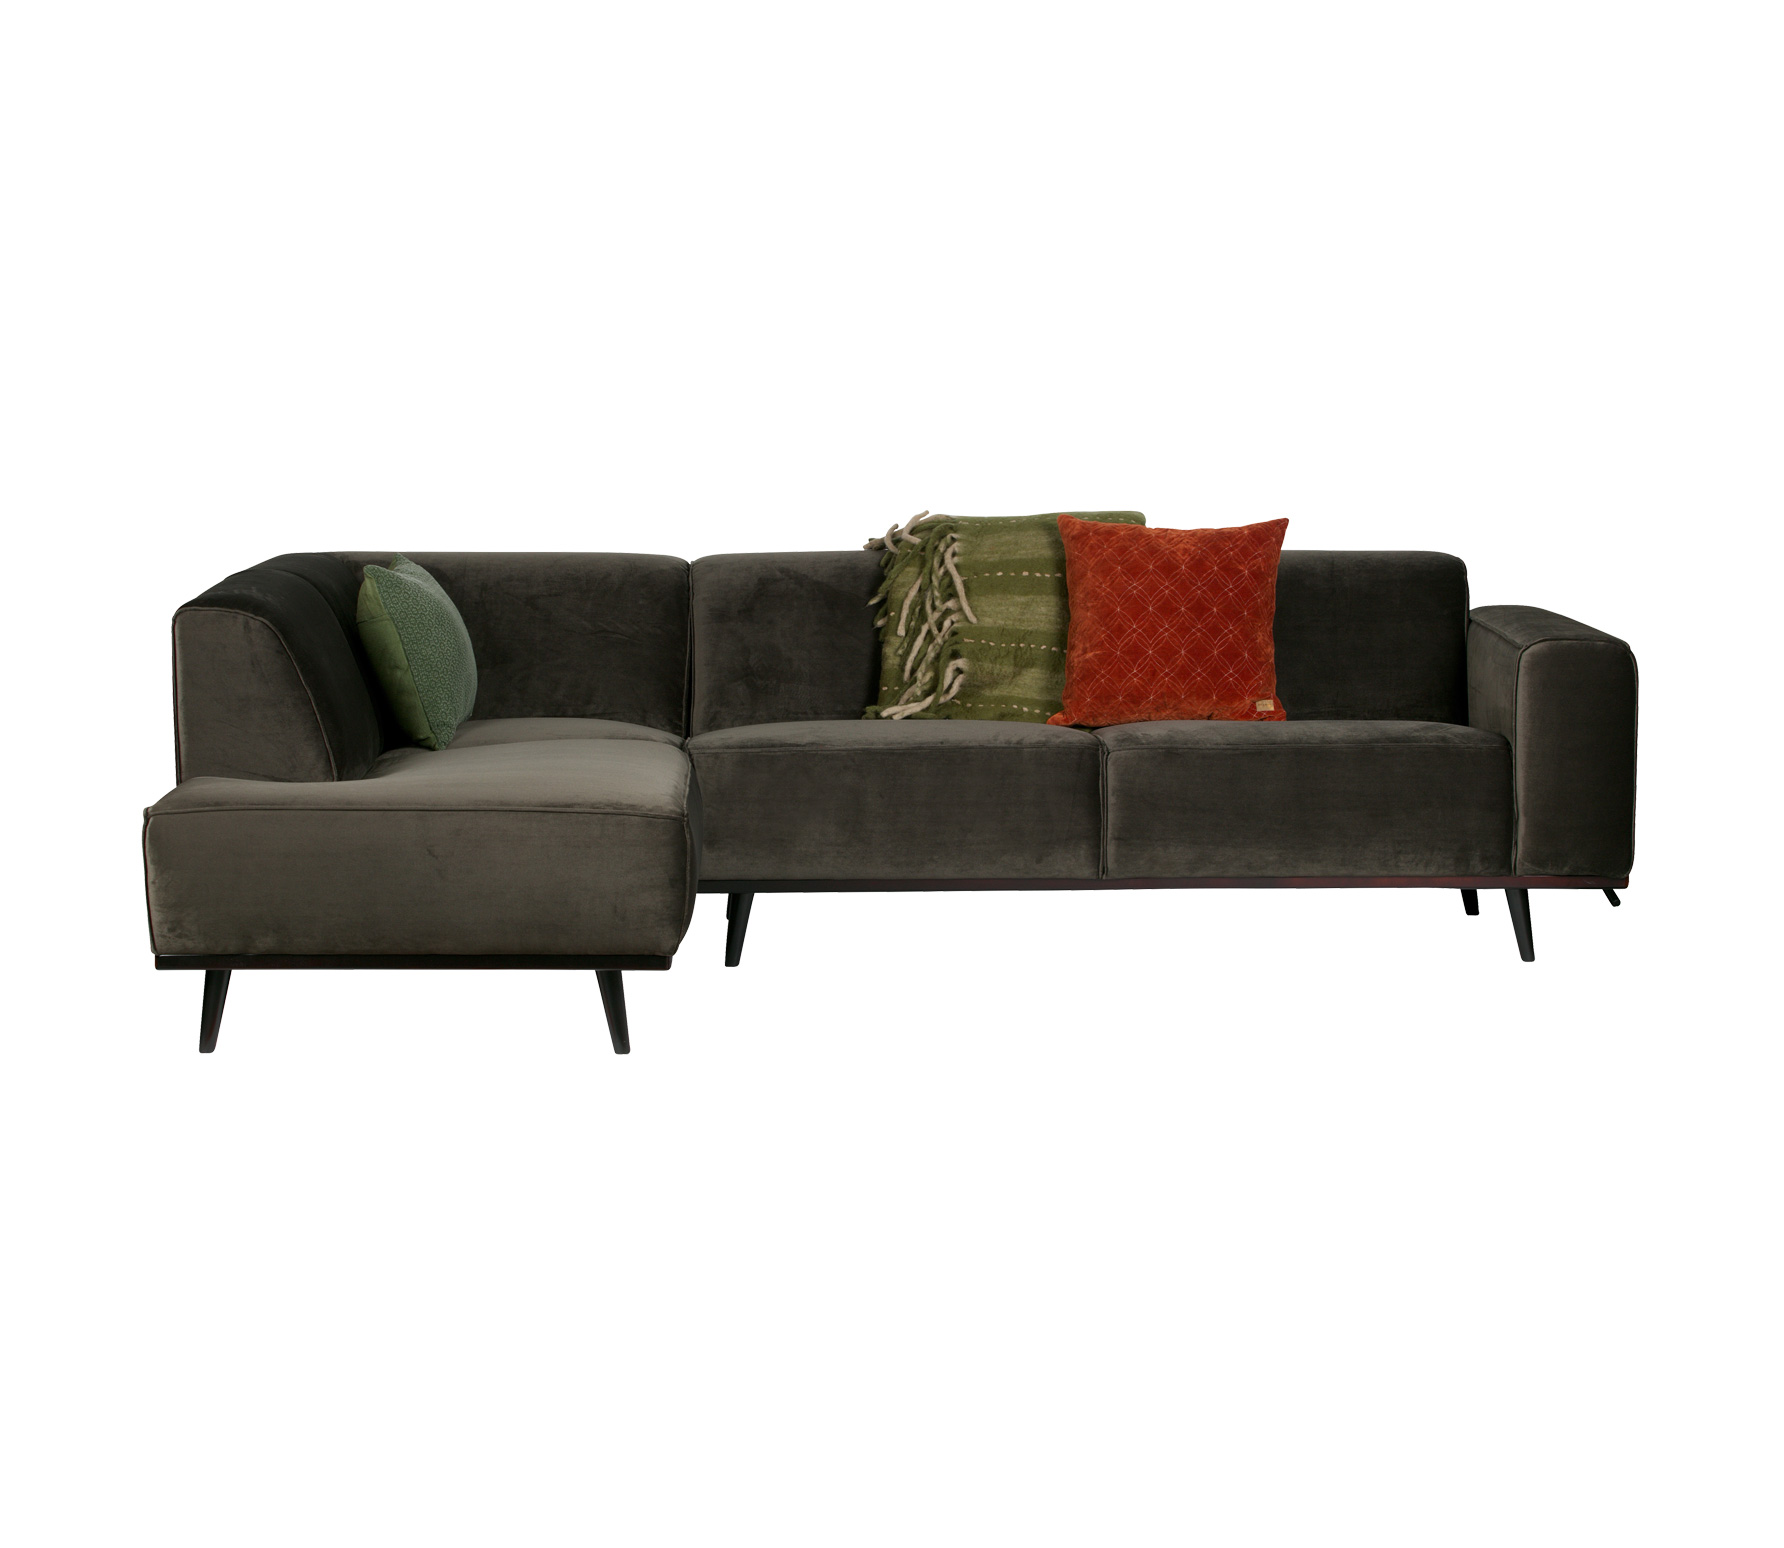 BePureHome Statement hoekbank velvet warm groen Links